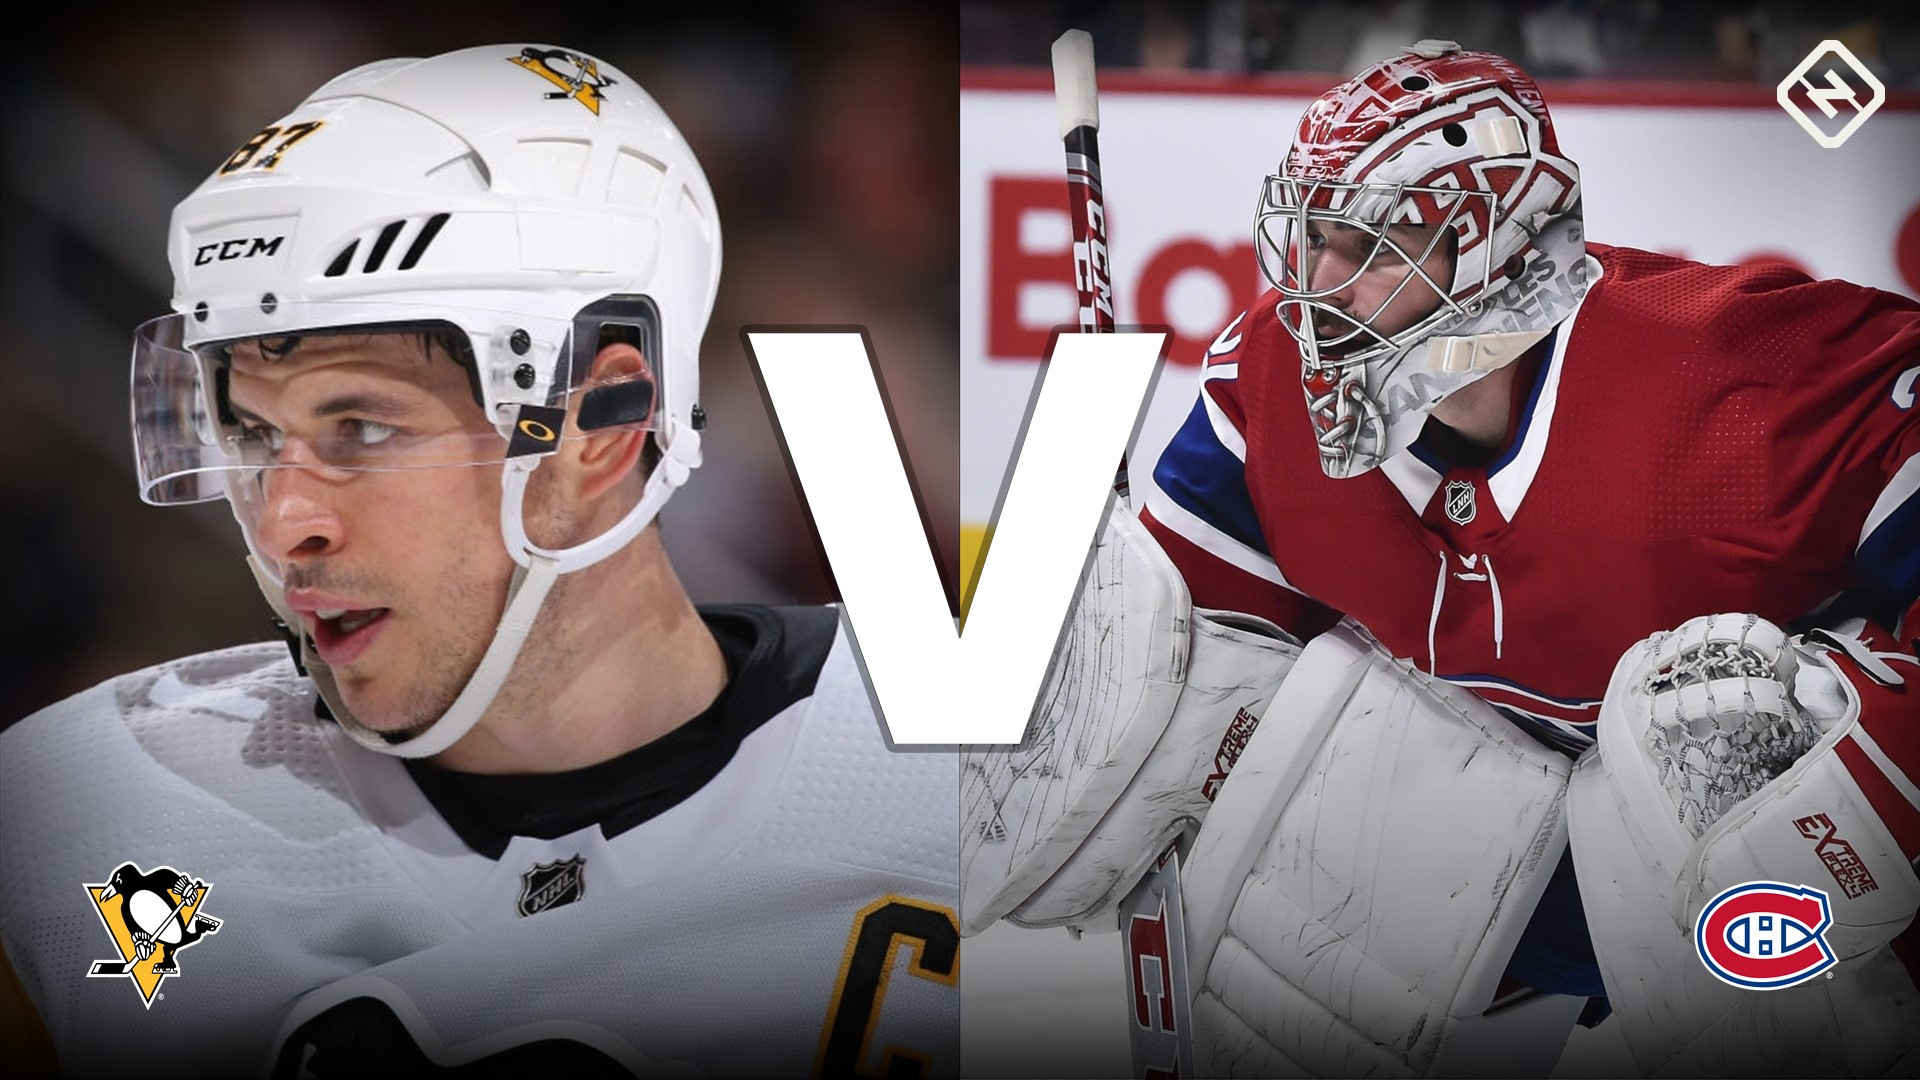 Penguins vs. Canadiens live score, updates, highlights from Game 4 of NHL playoffs qualifier - sporting news